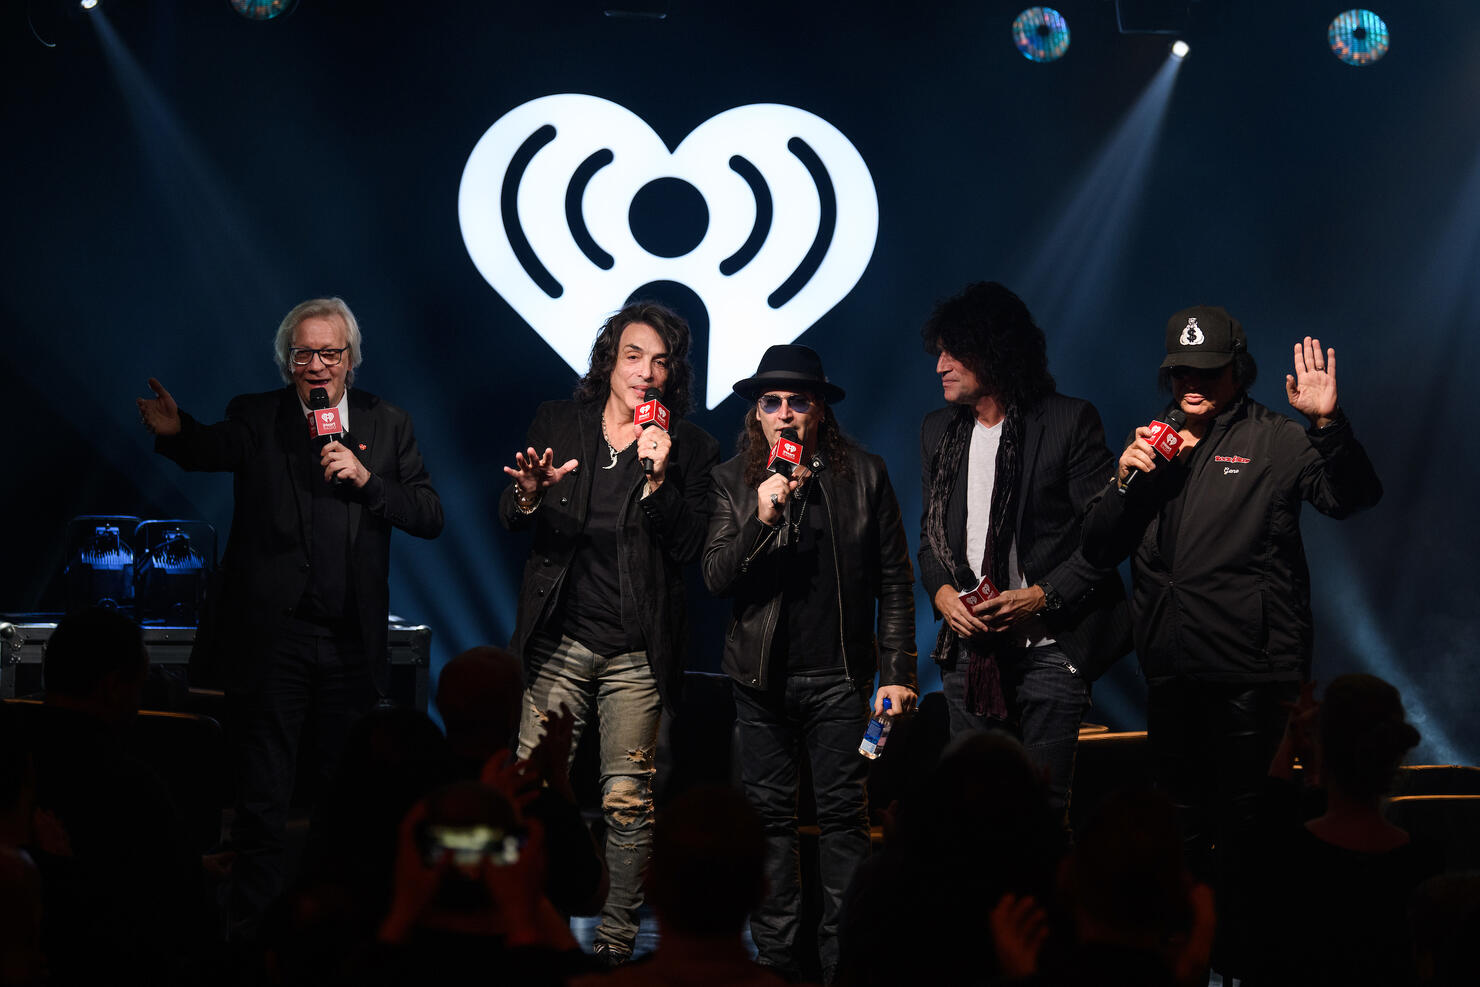 iHeartRadio's Jim Kerr with Paul Stanley, Eric Singer, Tommy Thayer and Gene Simmons. (Photo credit: Chris Owyoung for iHeartRadio)